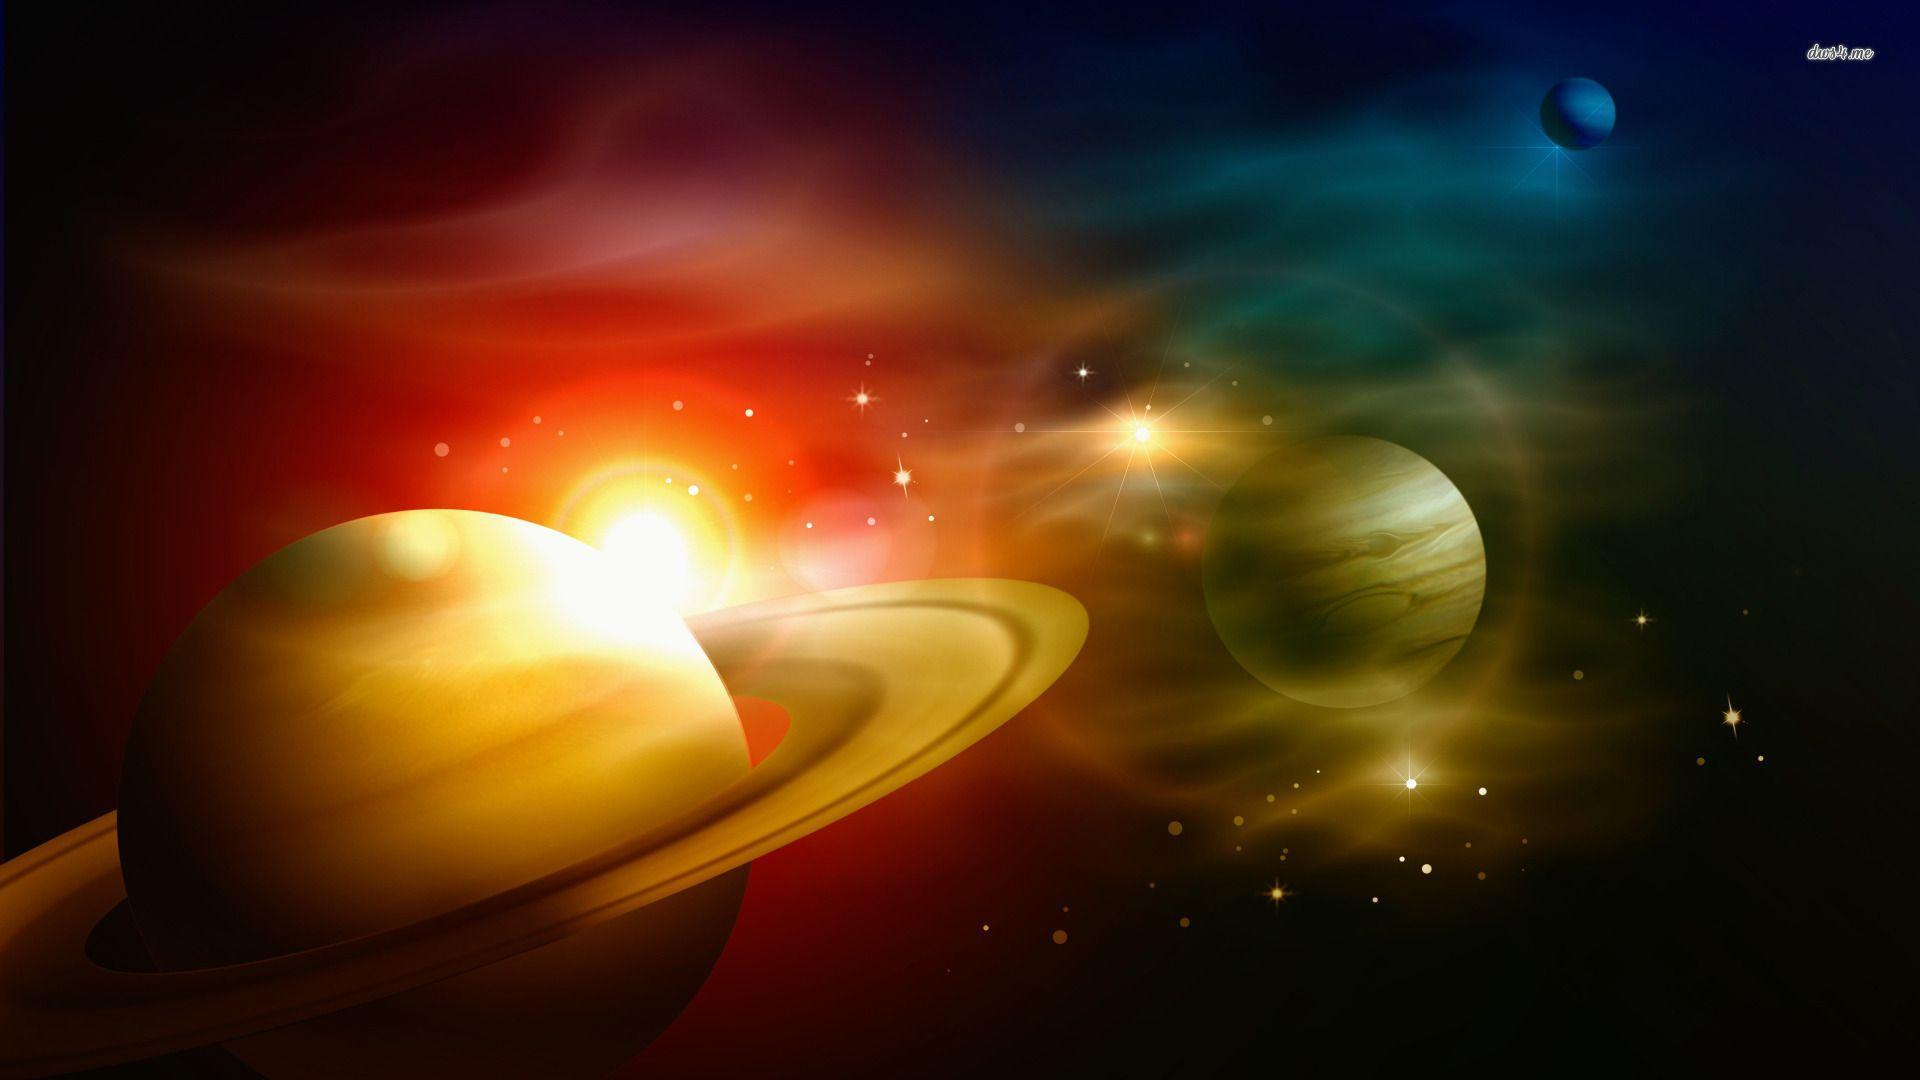 3d planets wallpaper hd - photo #8